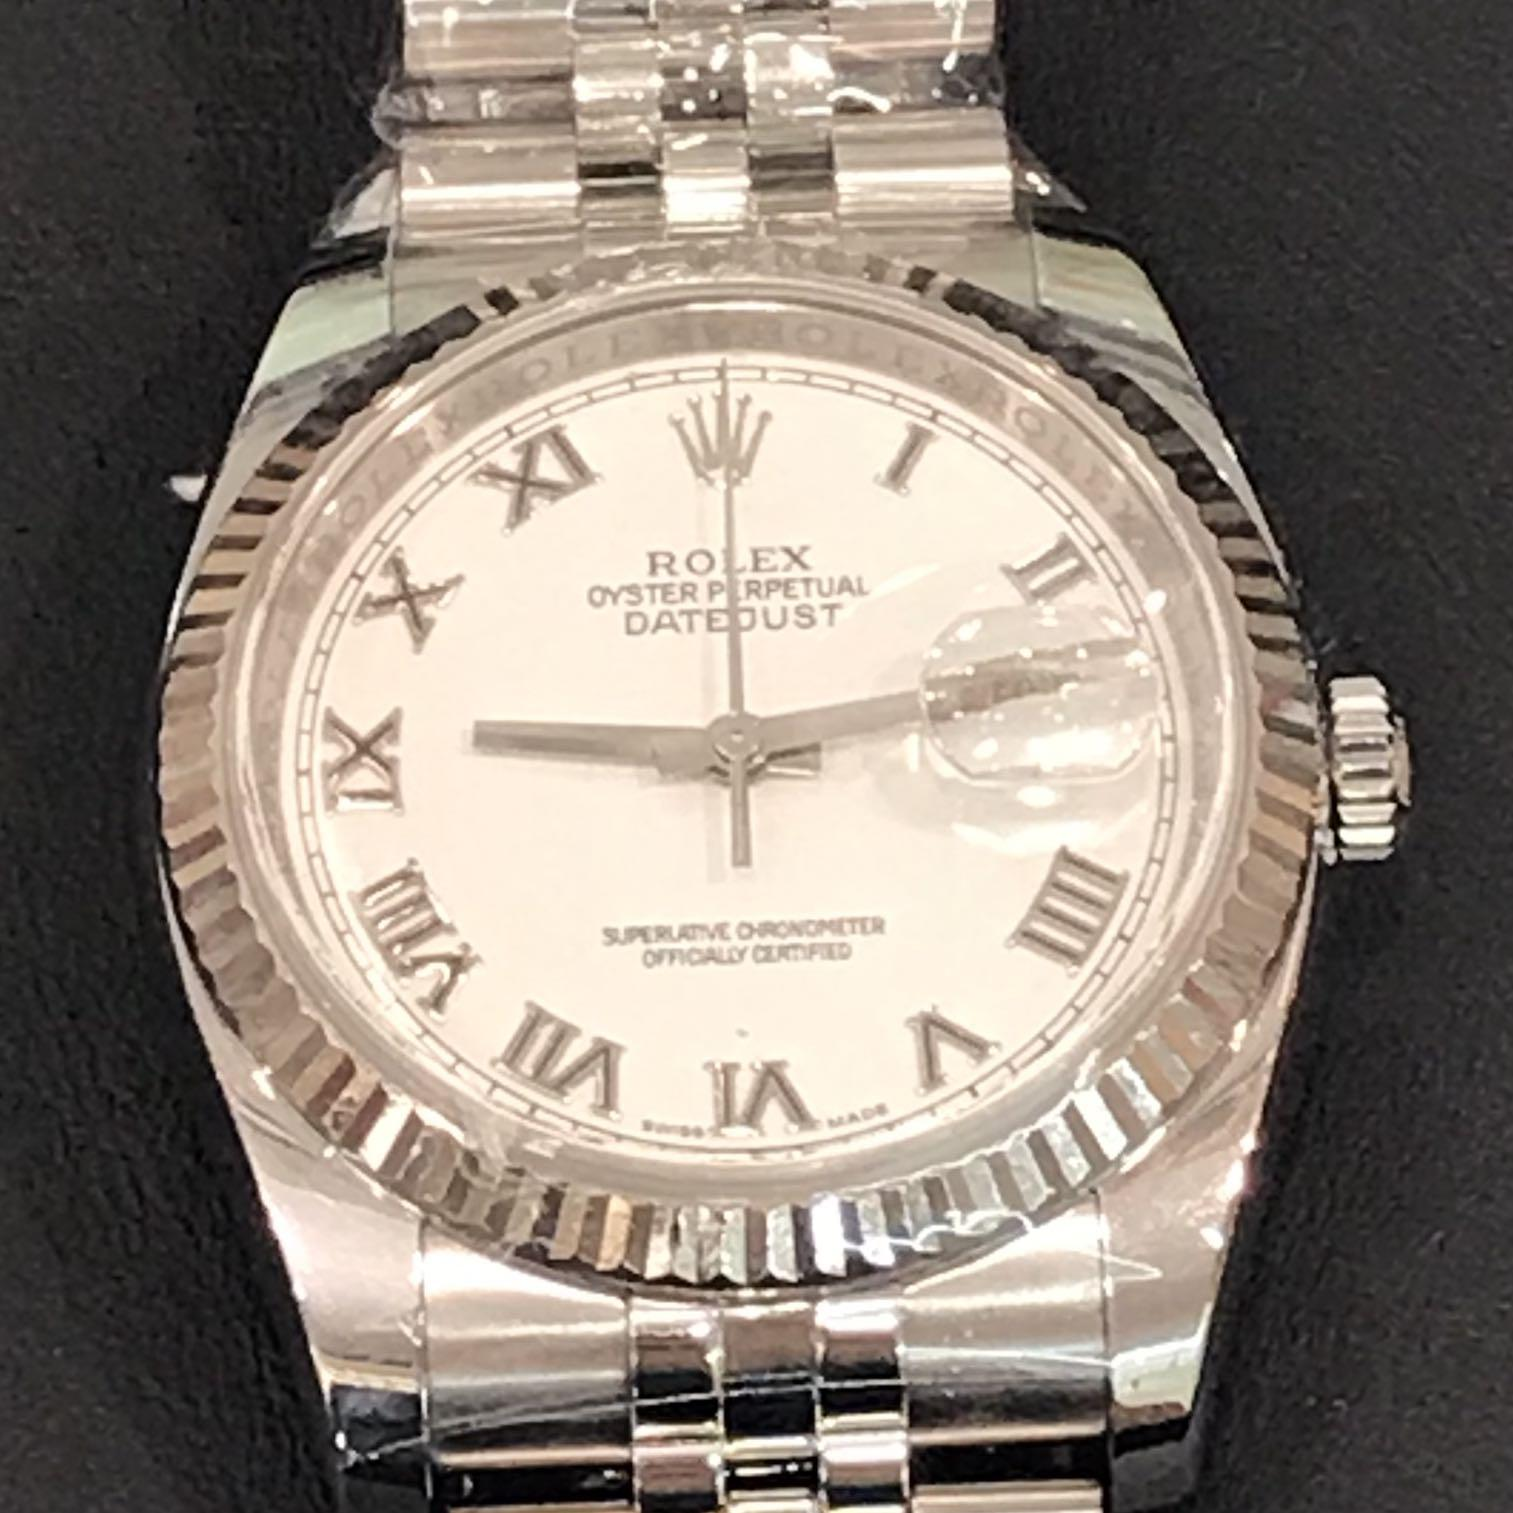 CLEARANCE SALES {Luxury Dress Watch - ROLEX} Authentic ROLEX MEN OYSTER PERPETUAL SUPERLATIVE CHRONOMETER OFFICIAL CERTIFIED 36mm Roman Number Dial Model 116234 Come With Original 18K  White Gold Bezel & Original Jubilee Bracelet